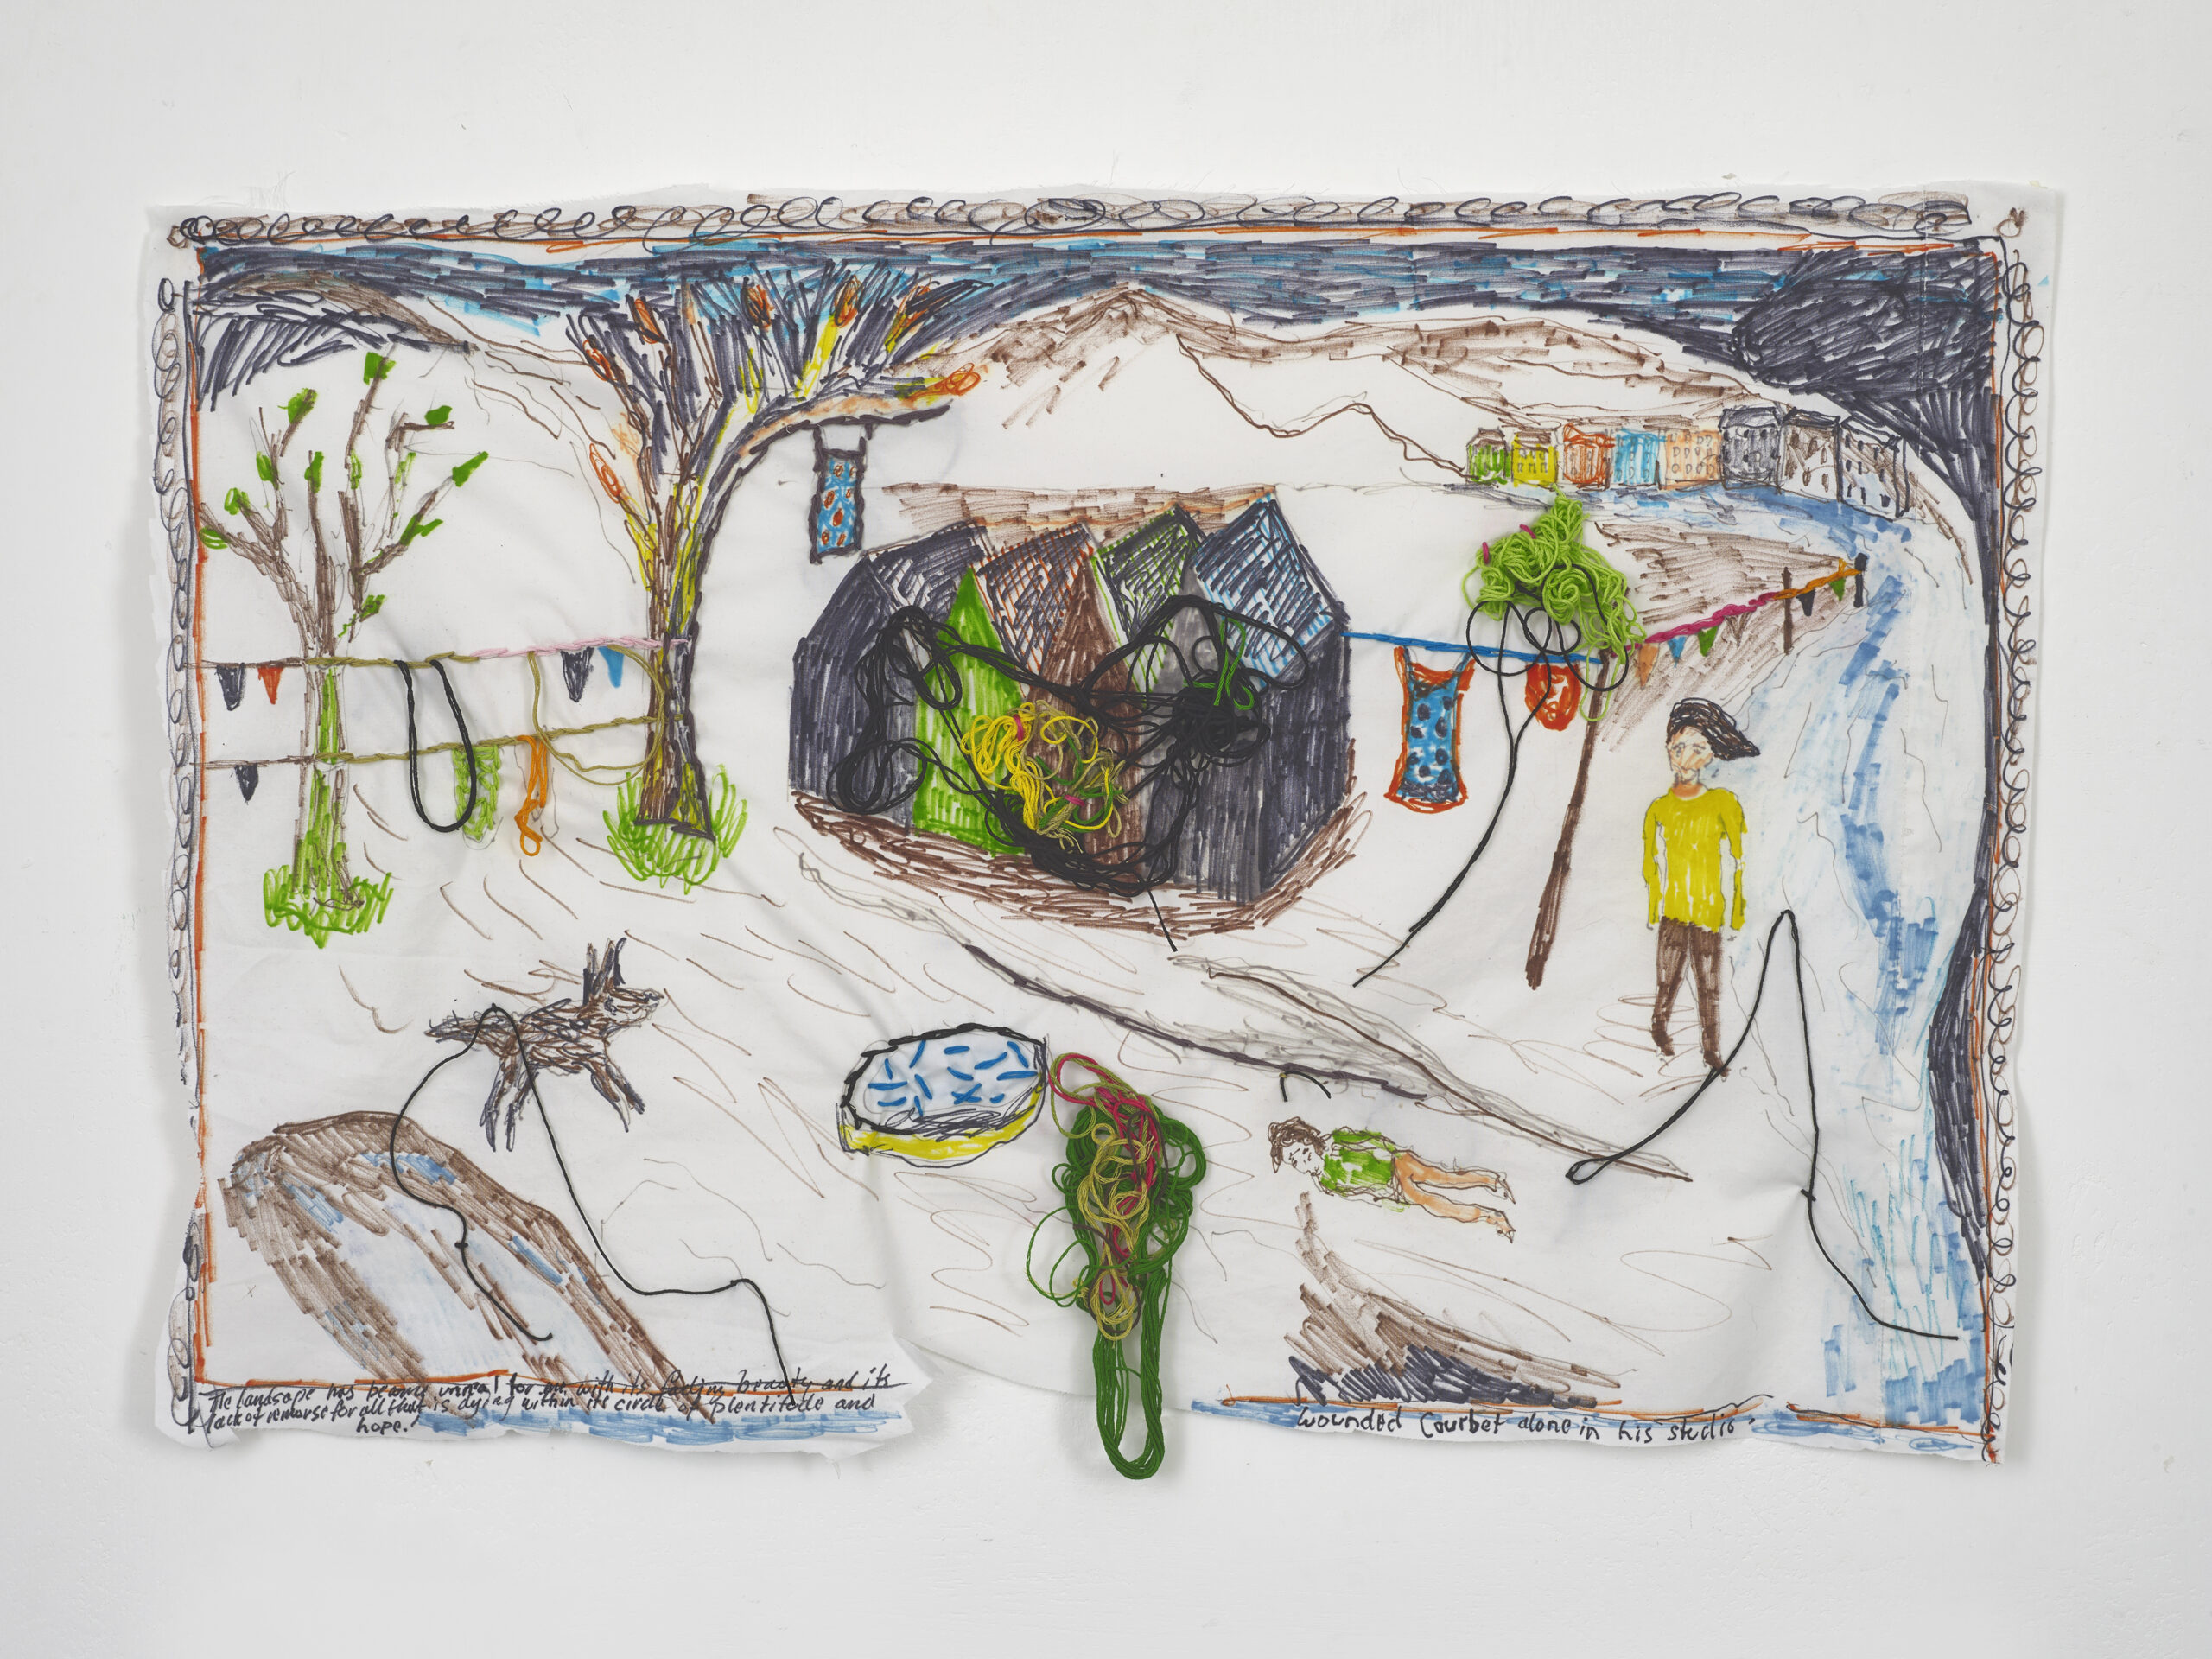 Brian Dawn Chalkley: Wounded Courbet alone in his studio (2020) Pencil, felt tip and thread on cotton pillow case, 75 cm x 45 cm